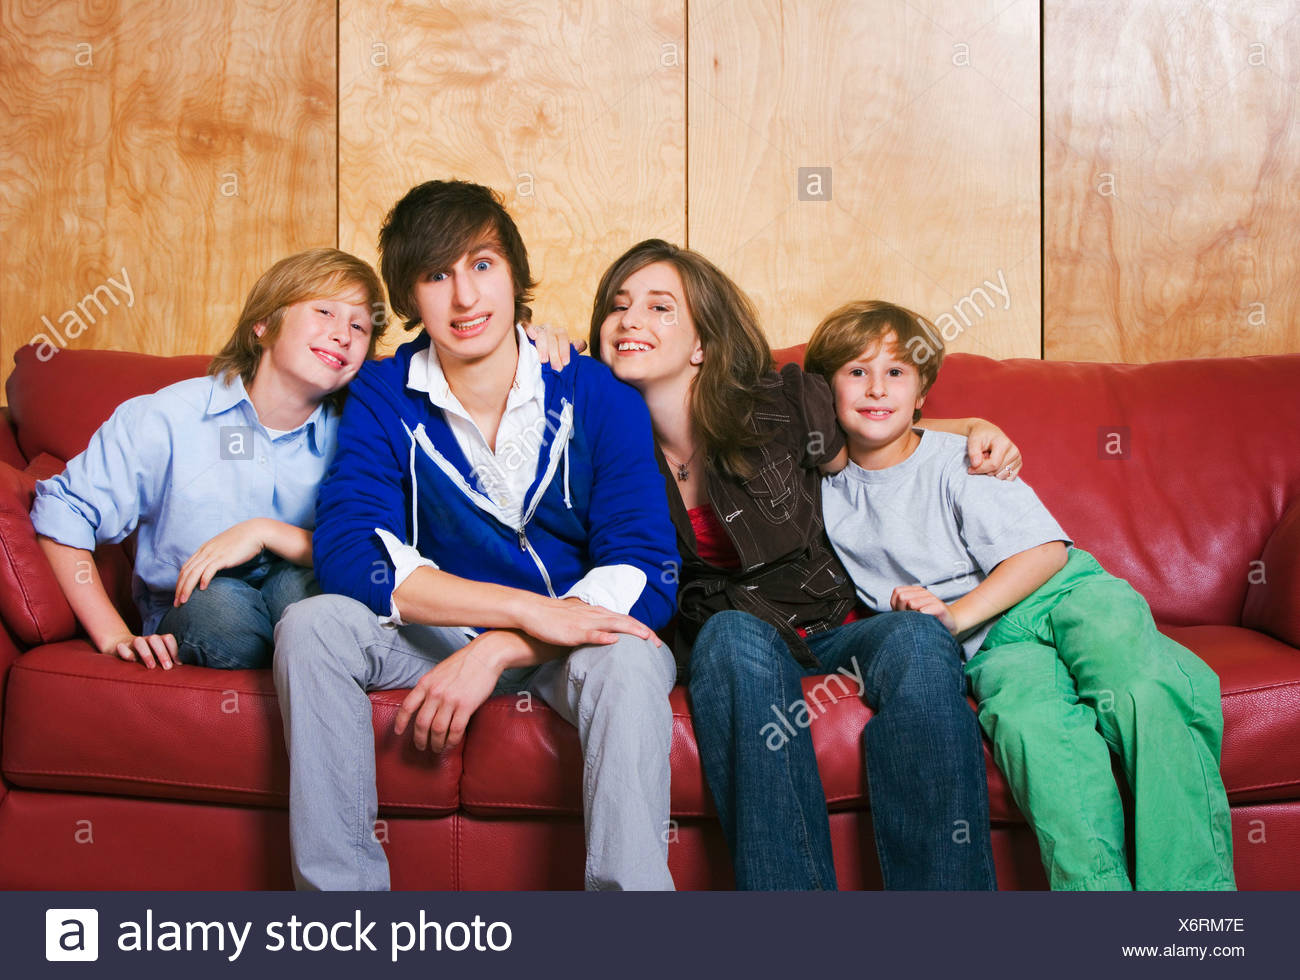 adolescents stockfotos adolescents bilder alamy. Black Bedroom Furniture Sets. Home Design Ideas